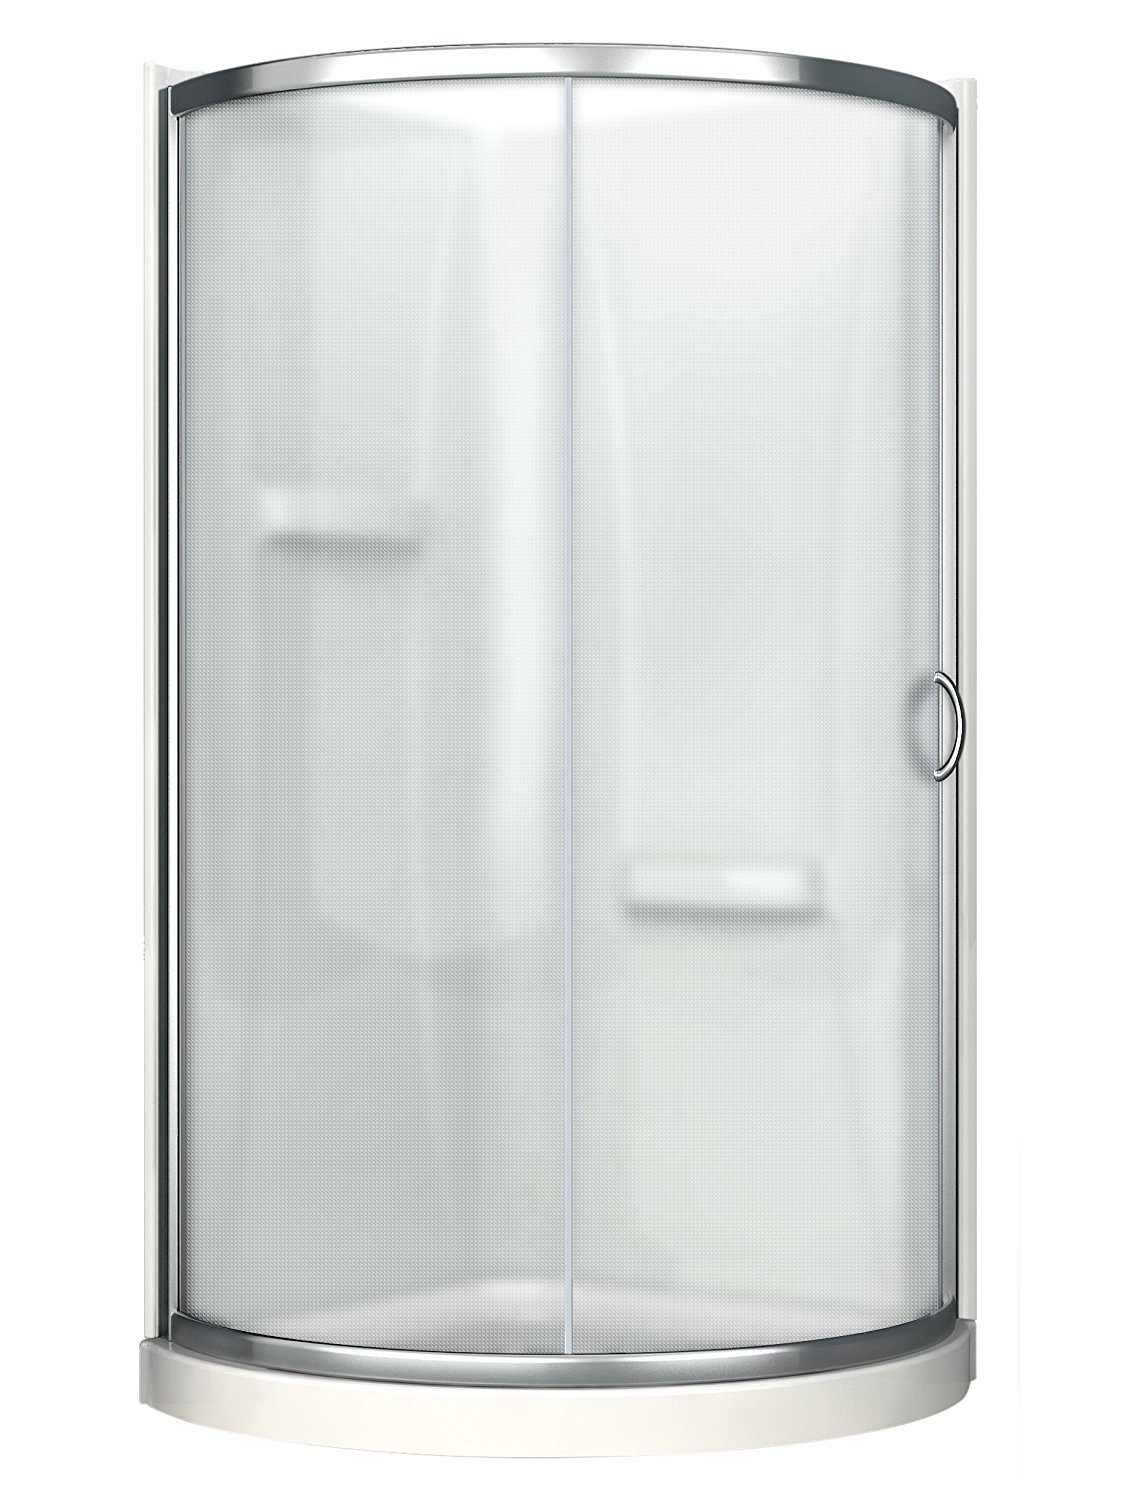 Ove Decors Breeze 38 withwalls Premium 38-Inch Shower Kit with Acrylic Base and Walls and Clear Glass Sliding Door